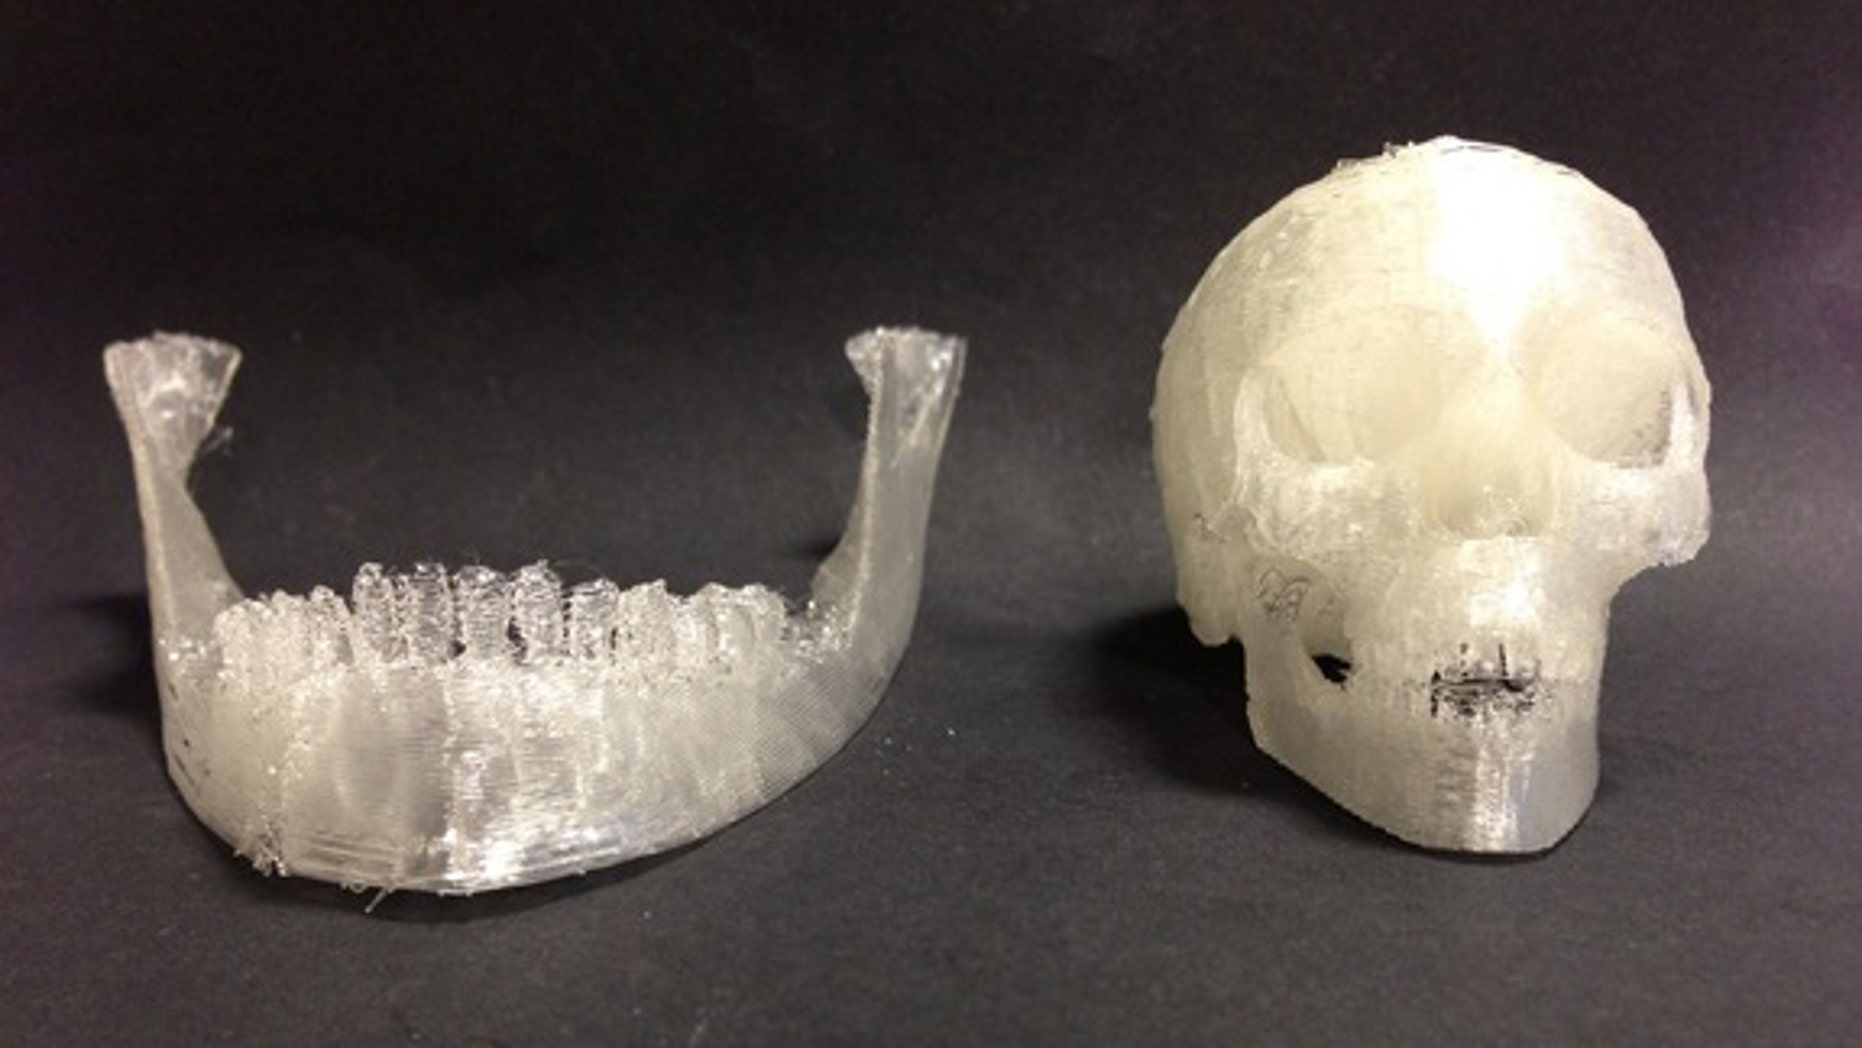 Using 3D printing, researchers can create scaffolds to repair/replace bone tissue. Shown here: a 3D printed skull.